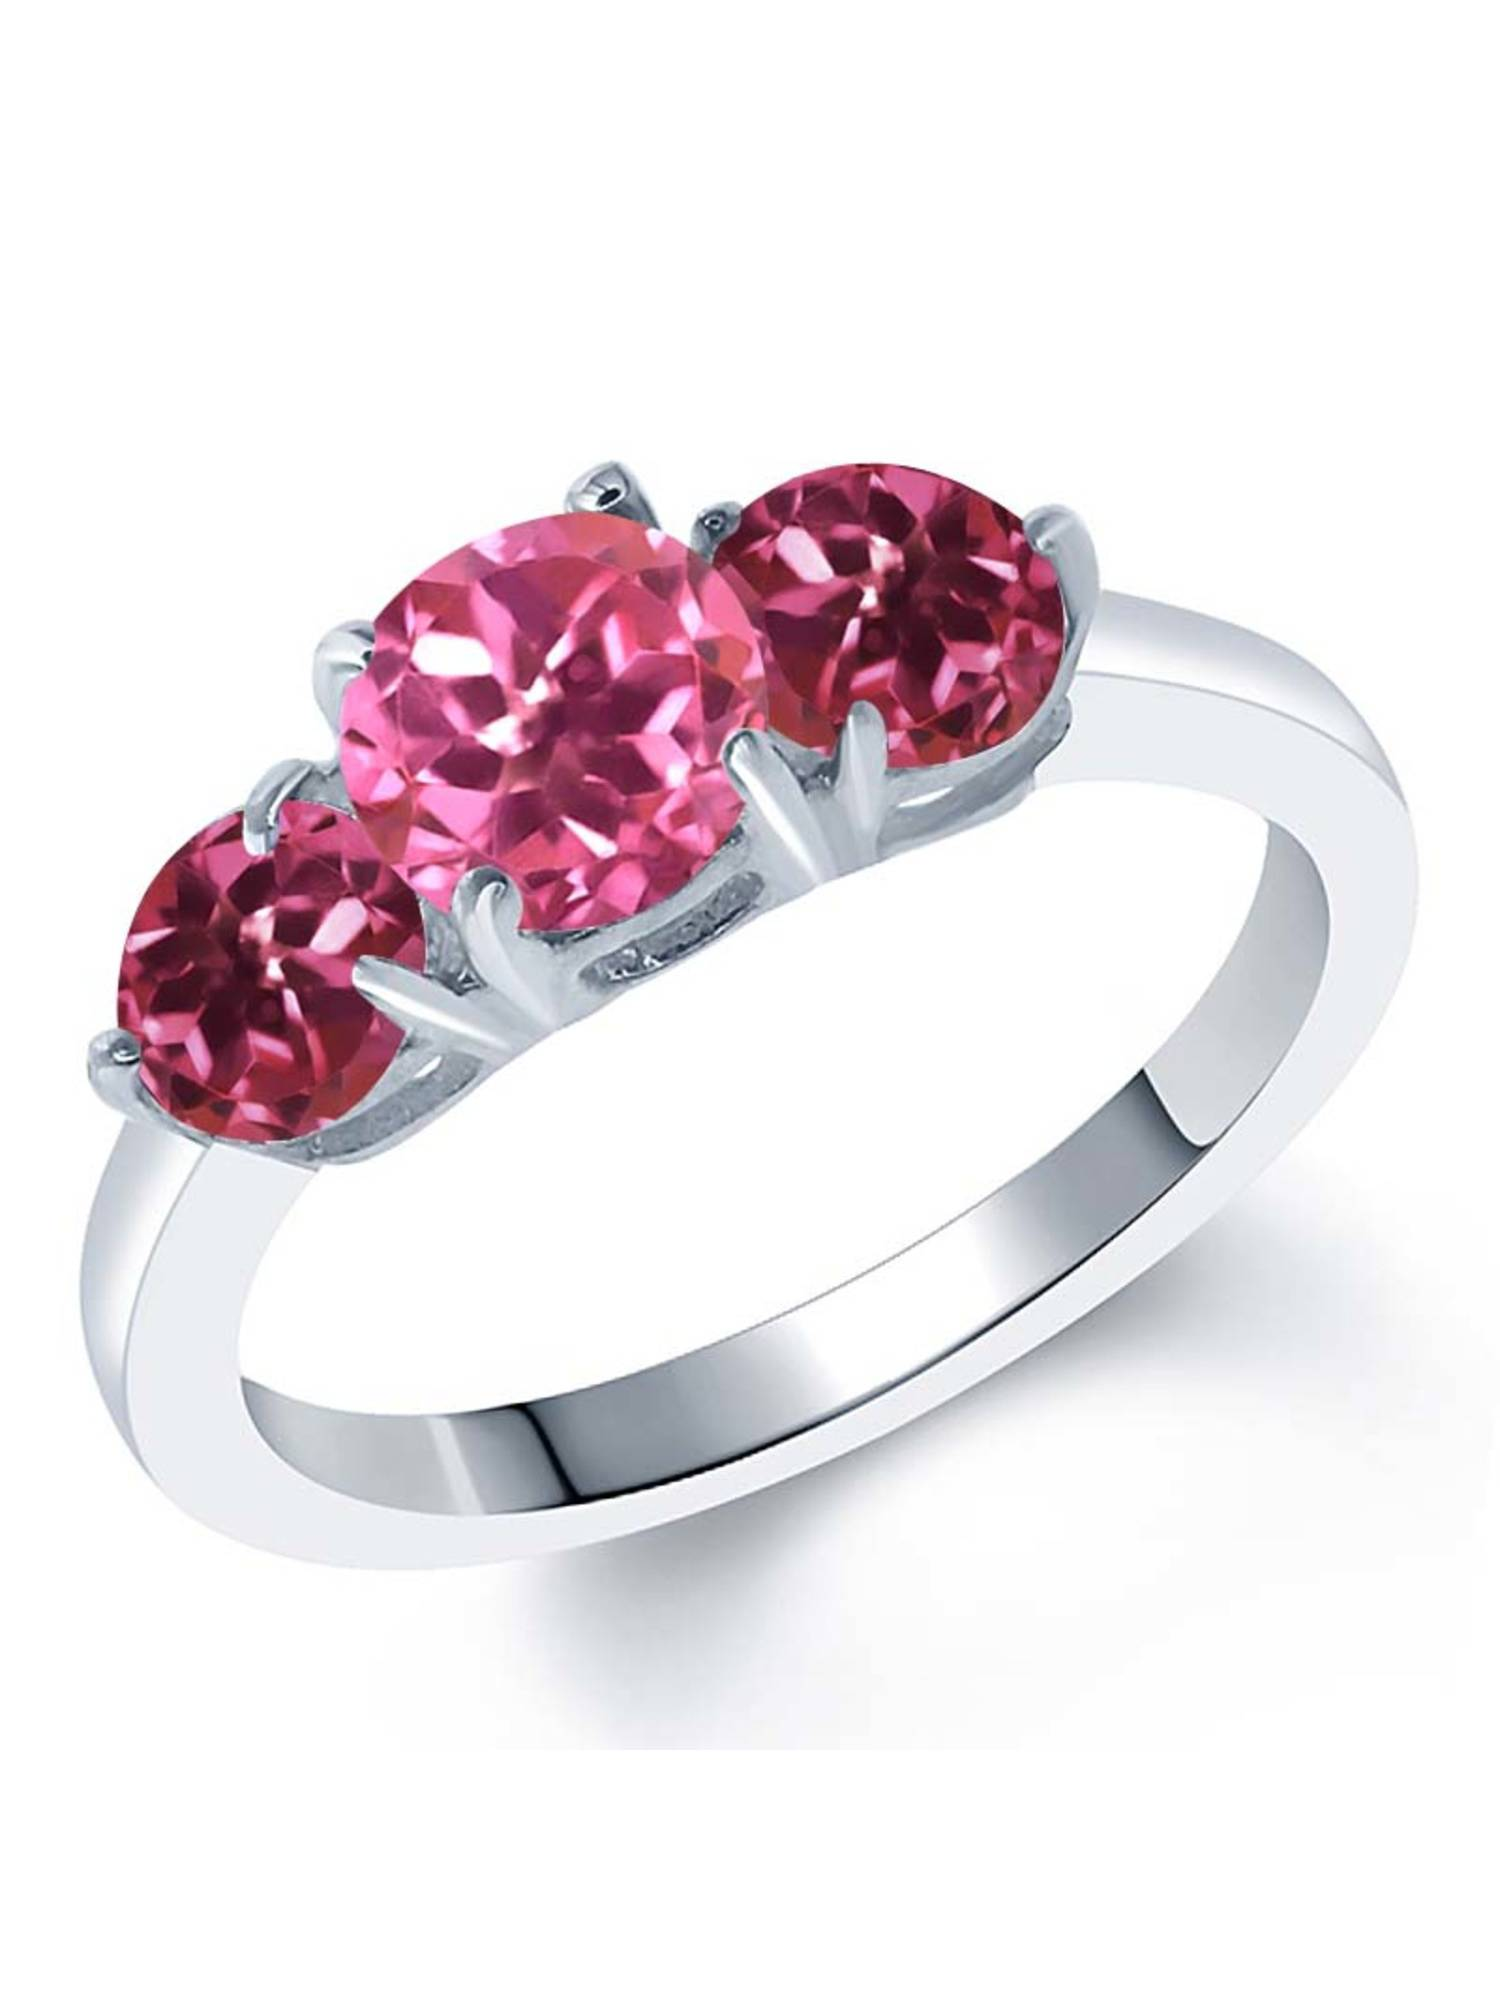 2.00 Ct Round Pink Mystic Topaz Pink Tourmaline 925 Sterling Silver Ring by